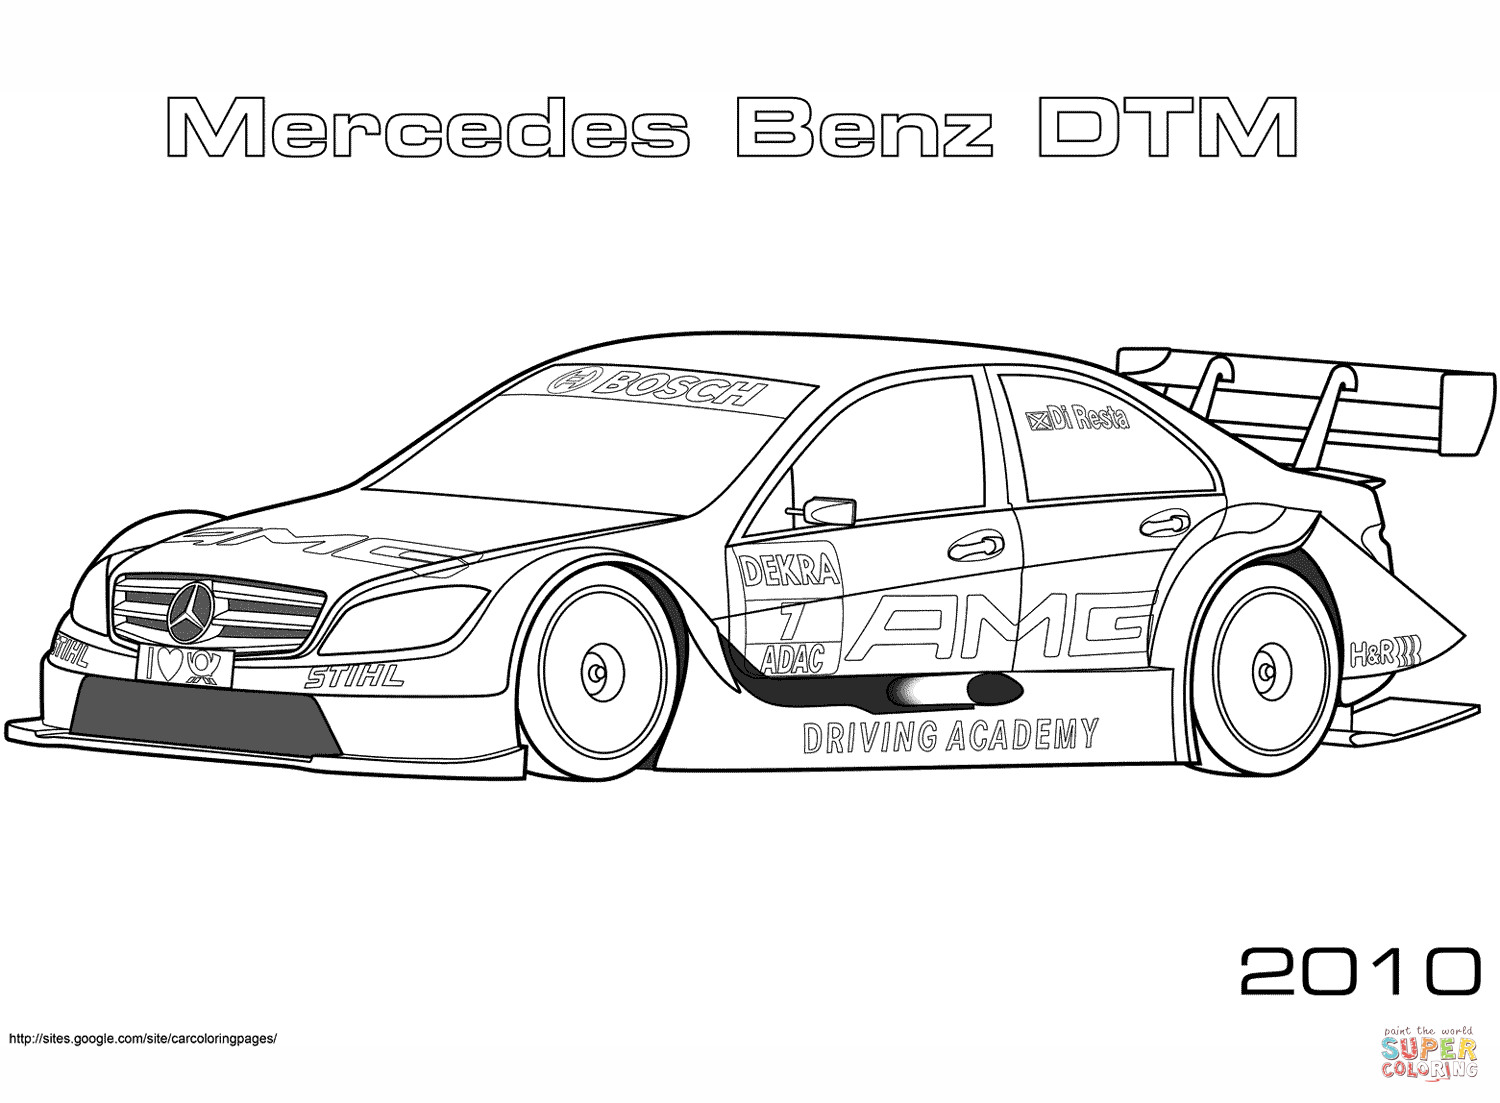 Mercedes Cars Coloring Pages Free Online Printable Sheets For Kids Get The Latest Images